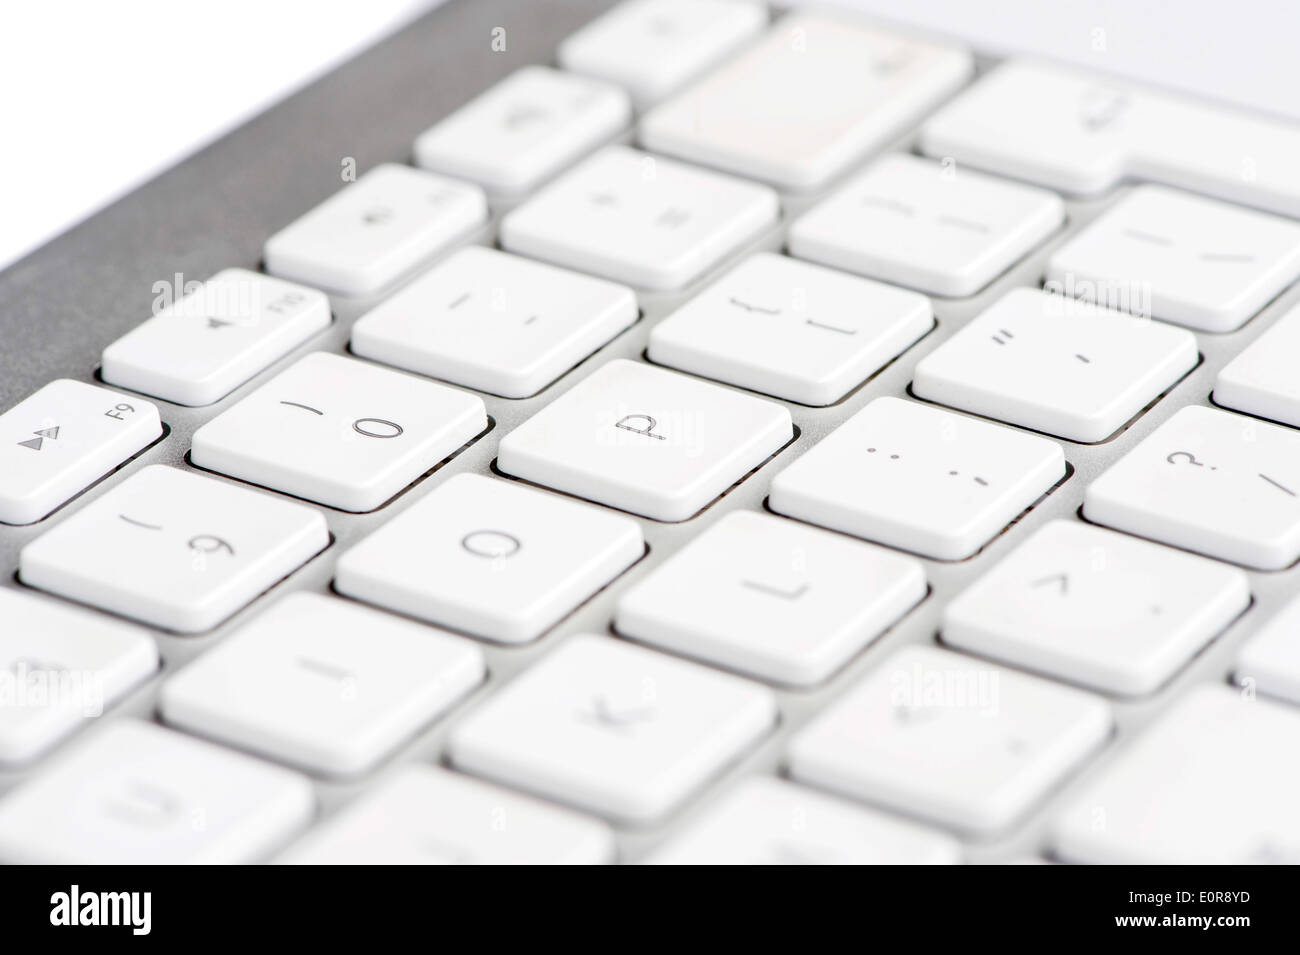 Apple mac white Keyboard focused on the letter P - Stock Image